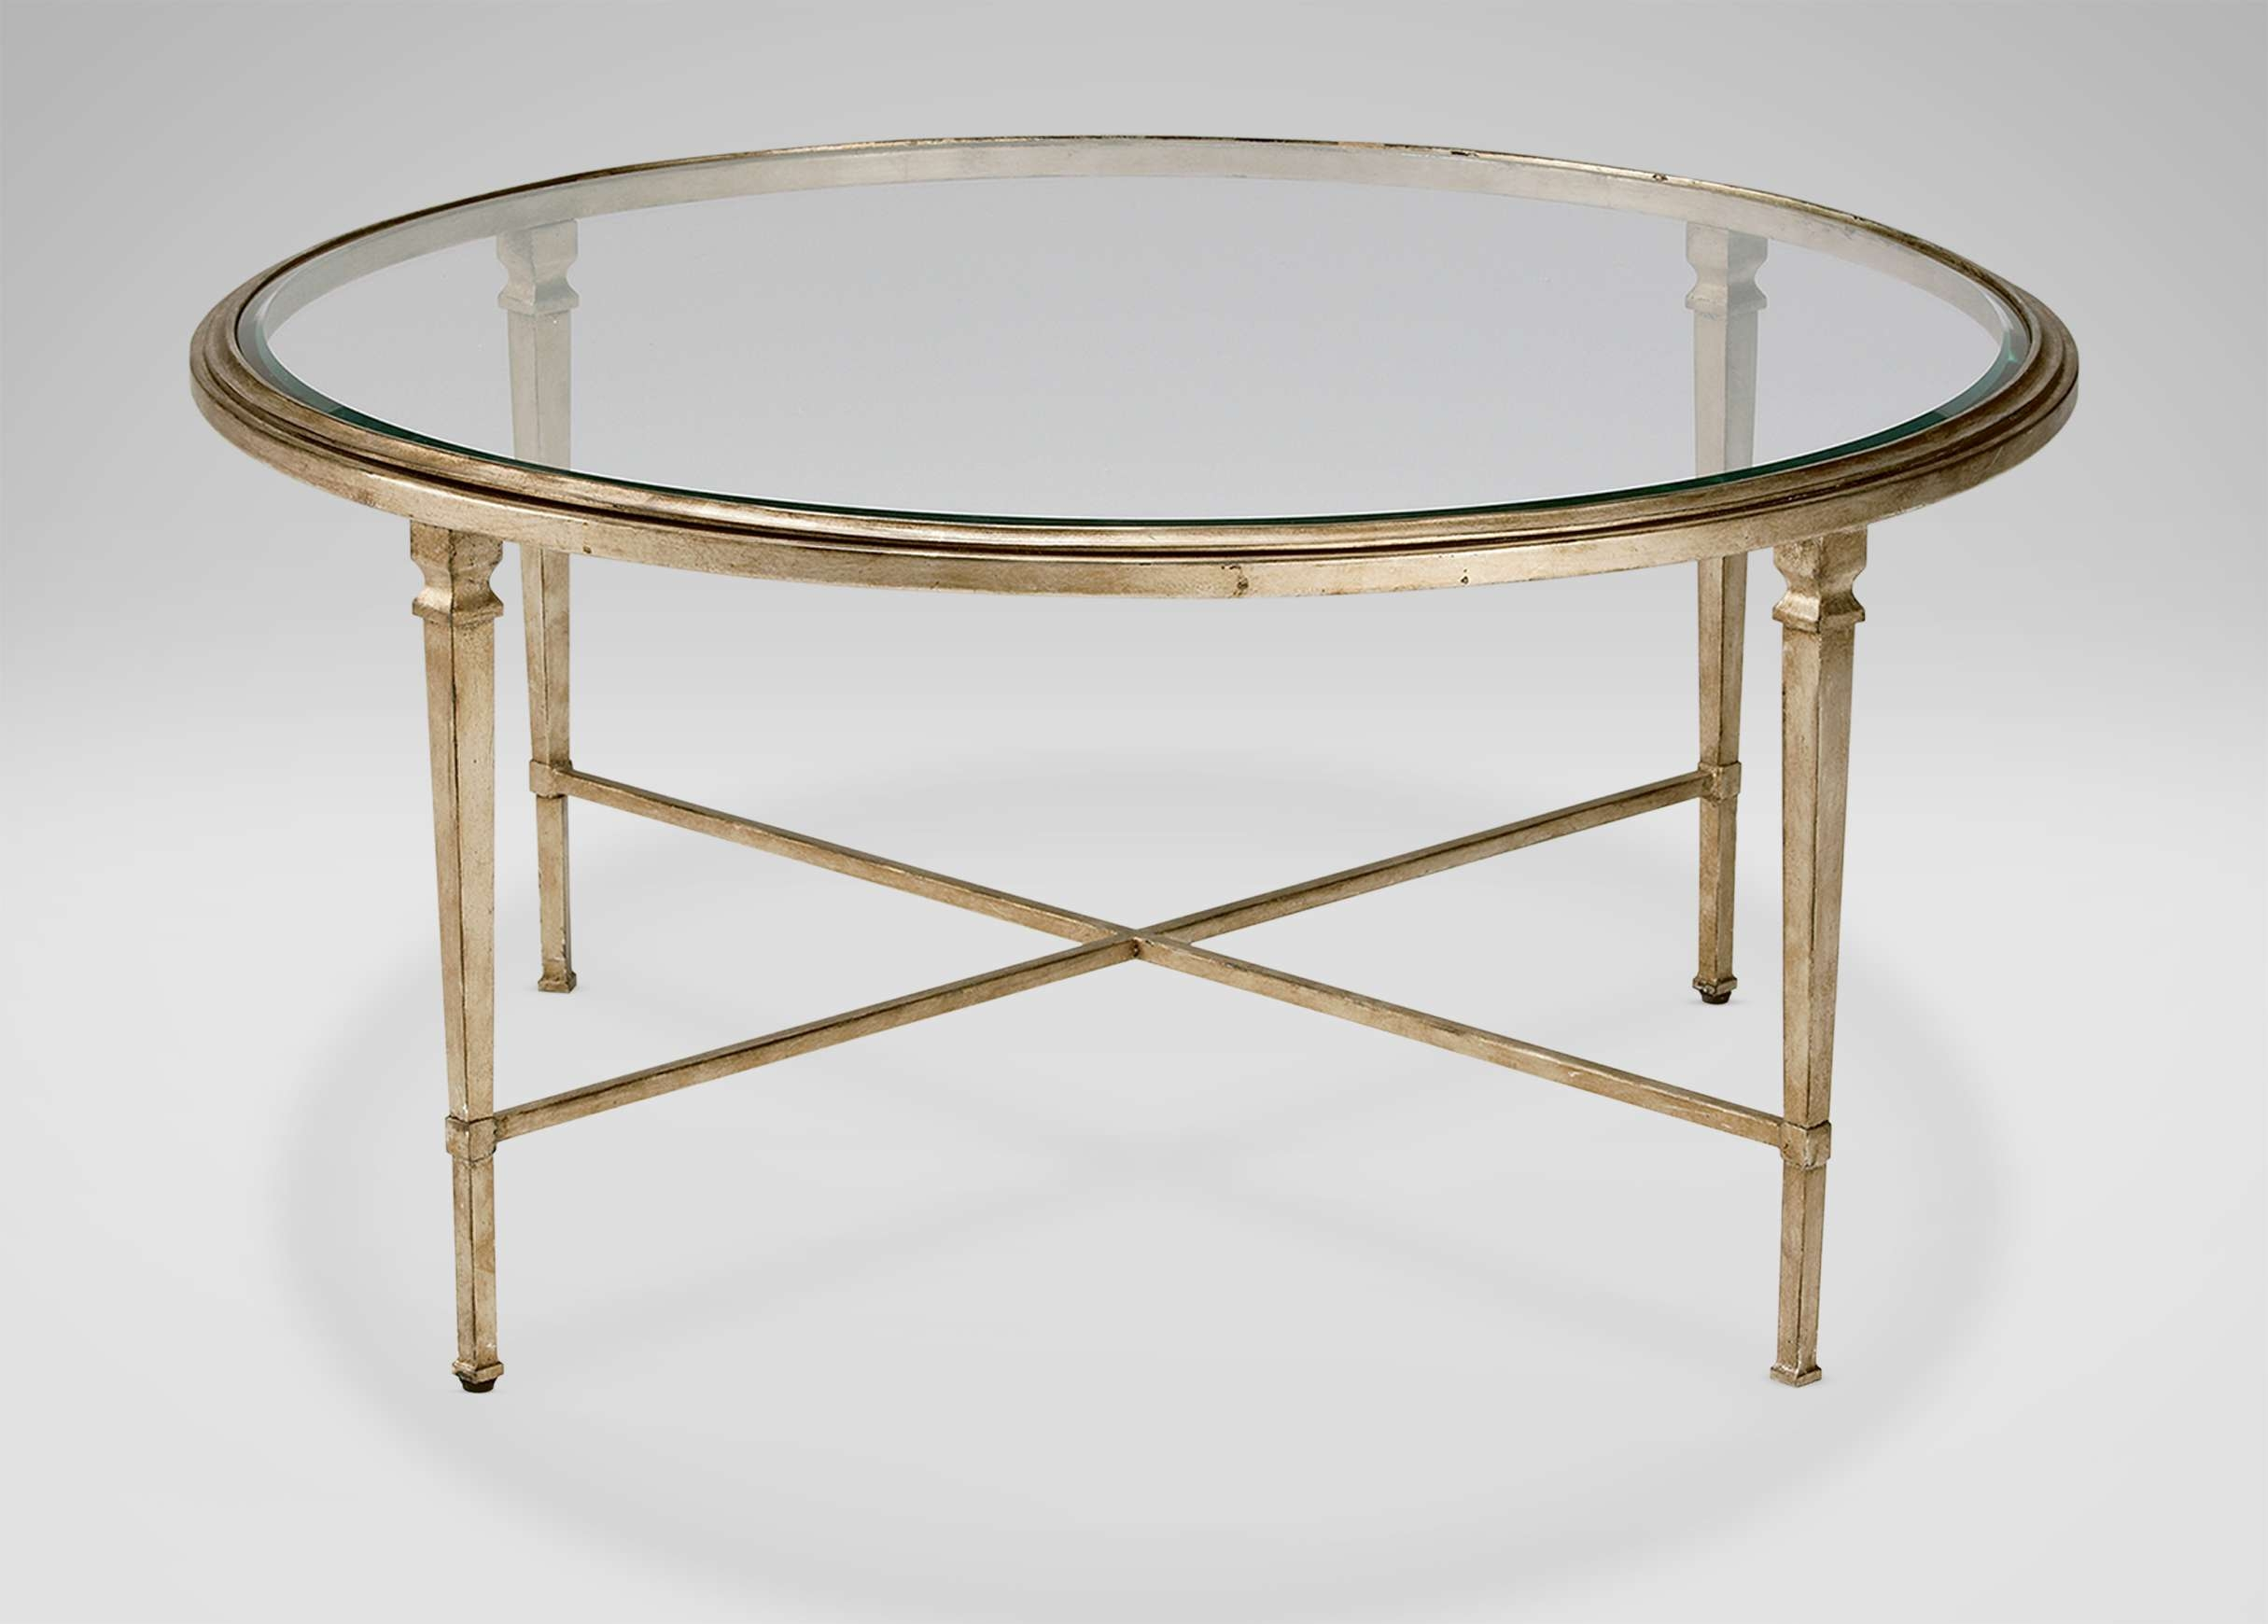 Newest Bronze And Glass Coffee Tables Throughout Coffee Table : Fabulous Contemporary Coffee Table / Glass / Brass (View 15 of 20)